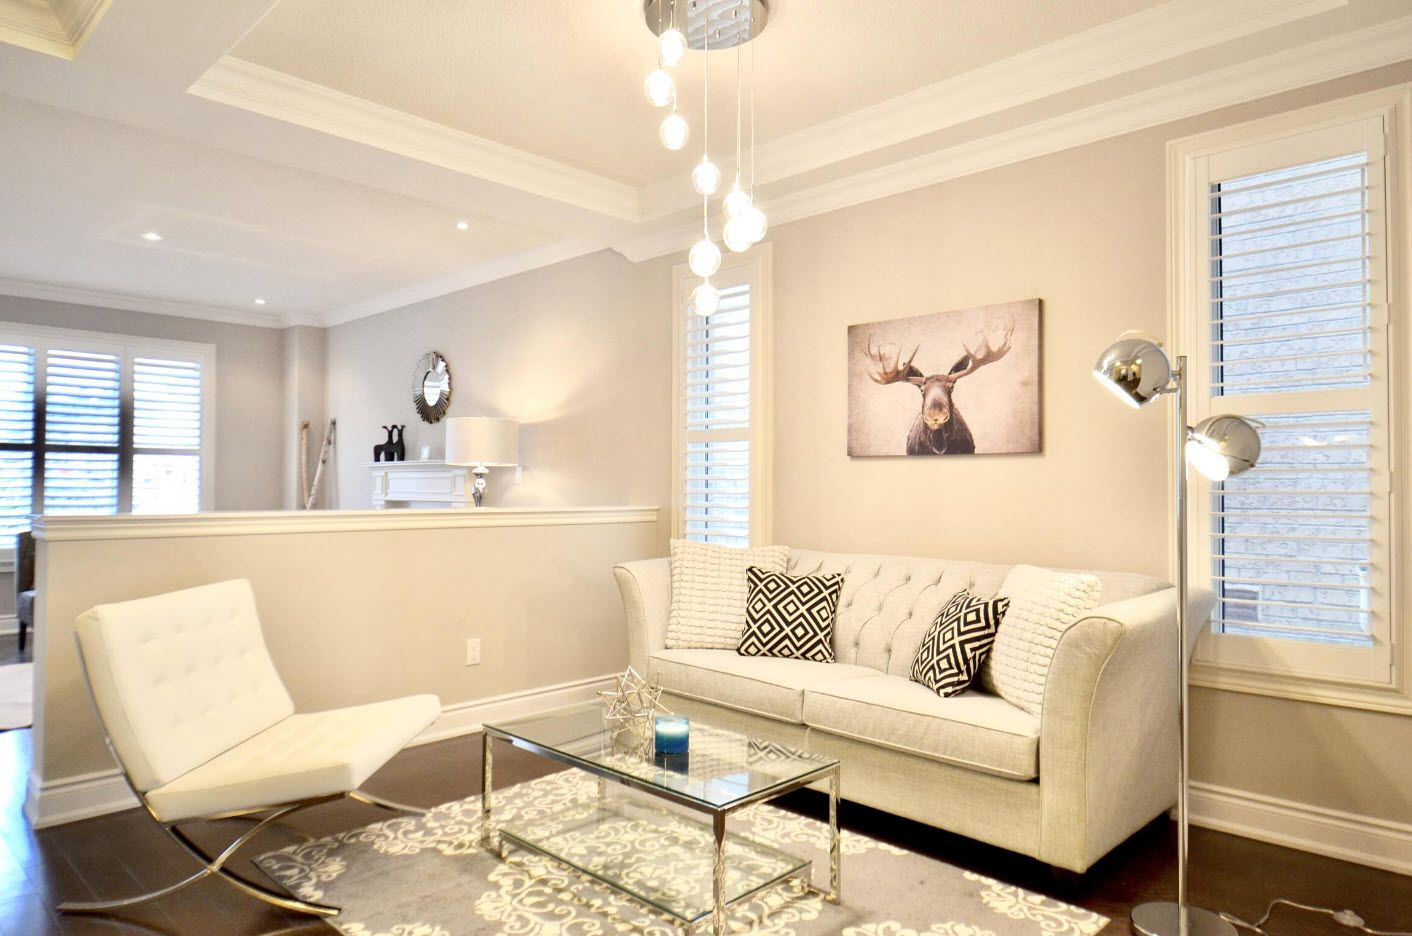 Pastel color designed successfully zoned modern sitting room